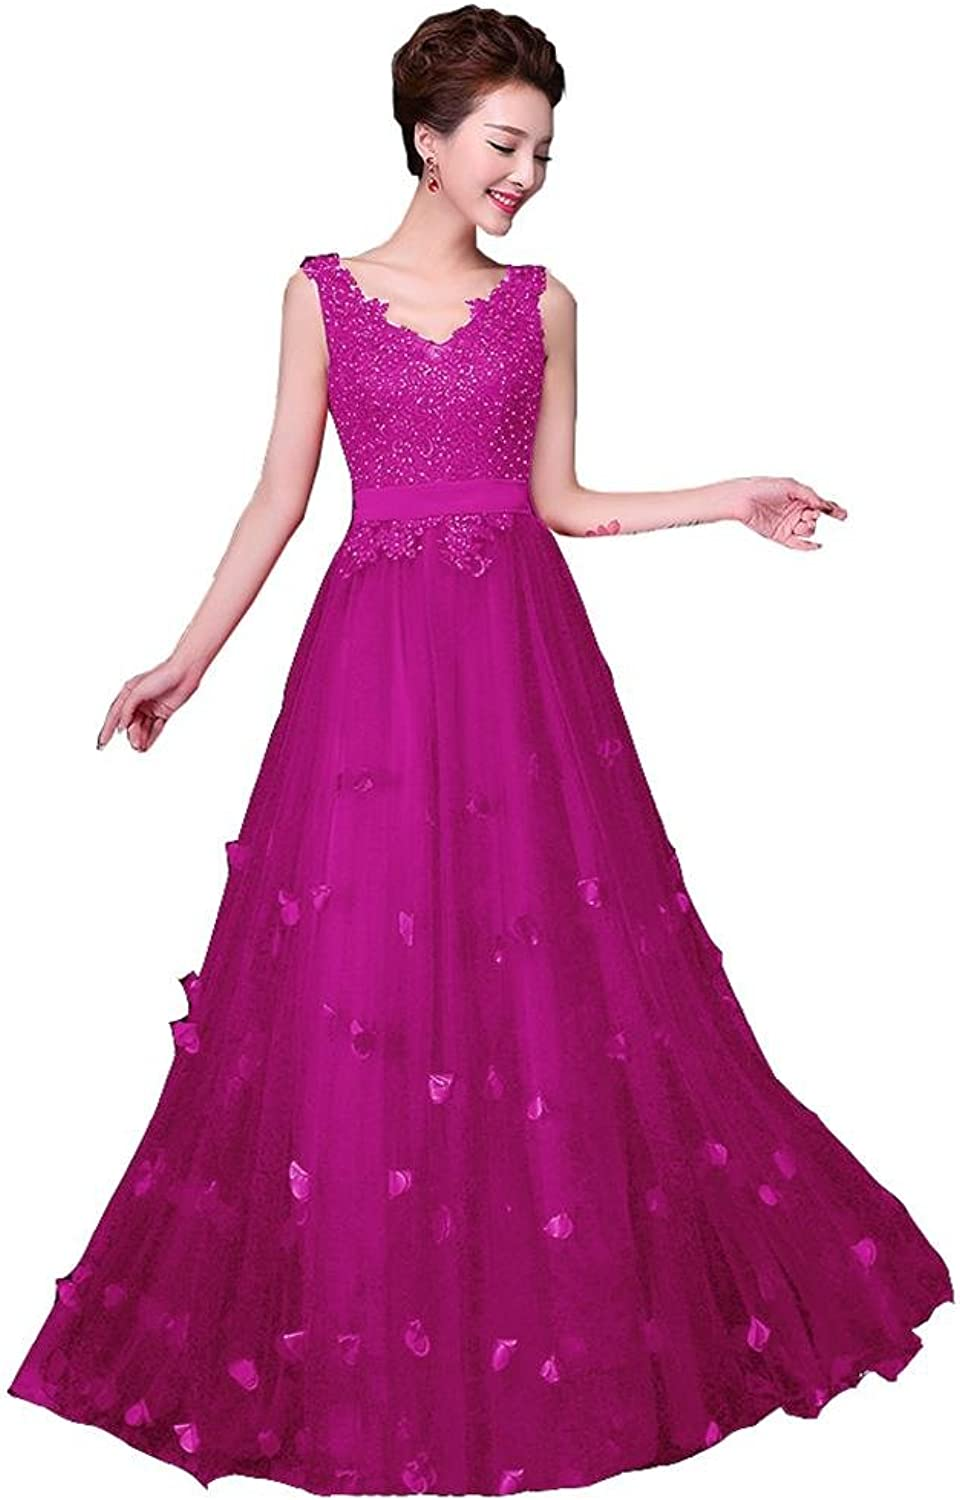 BeautyEmily Sleeveless Flowers Double VNeck LaceUp Evening Dress